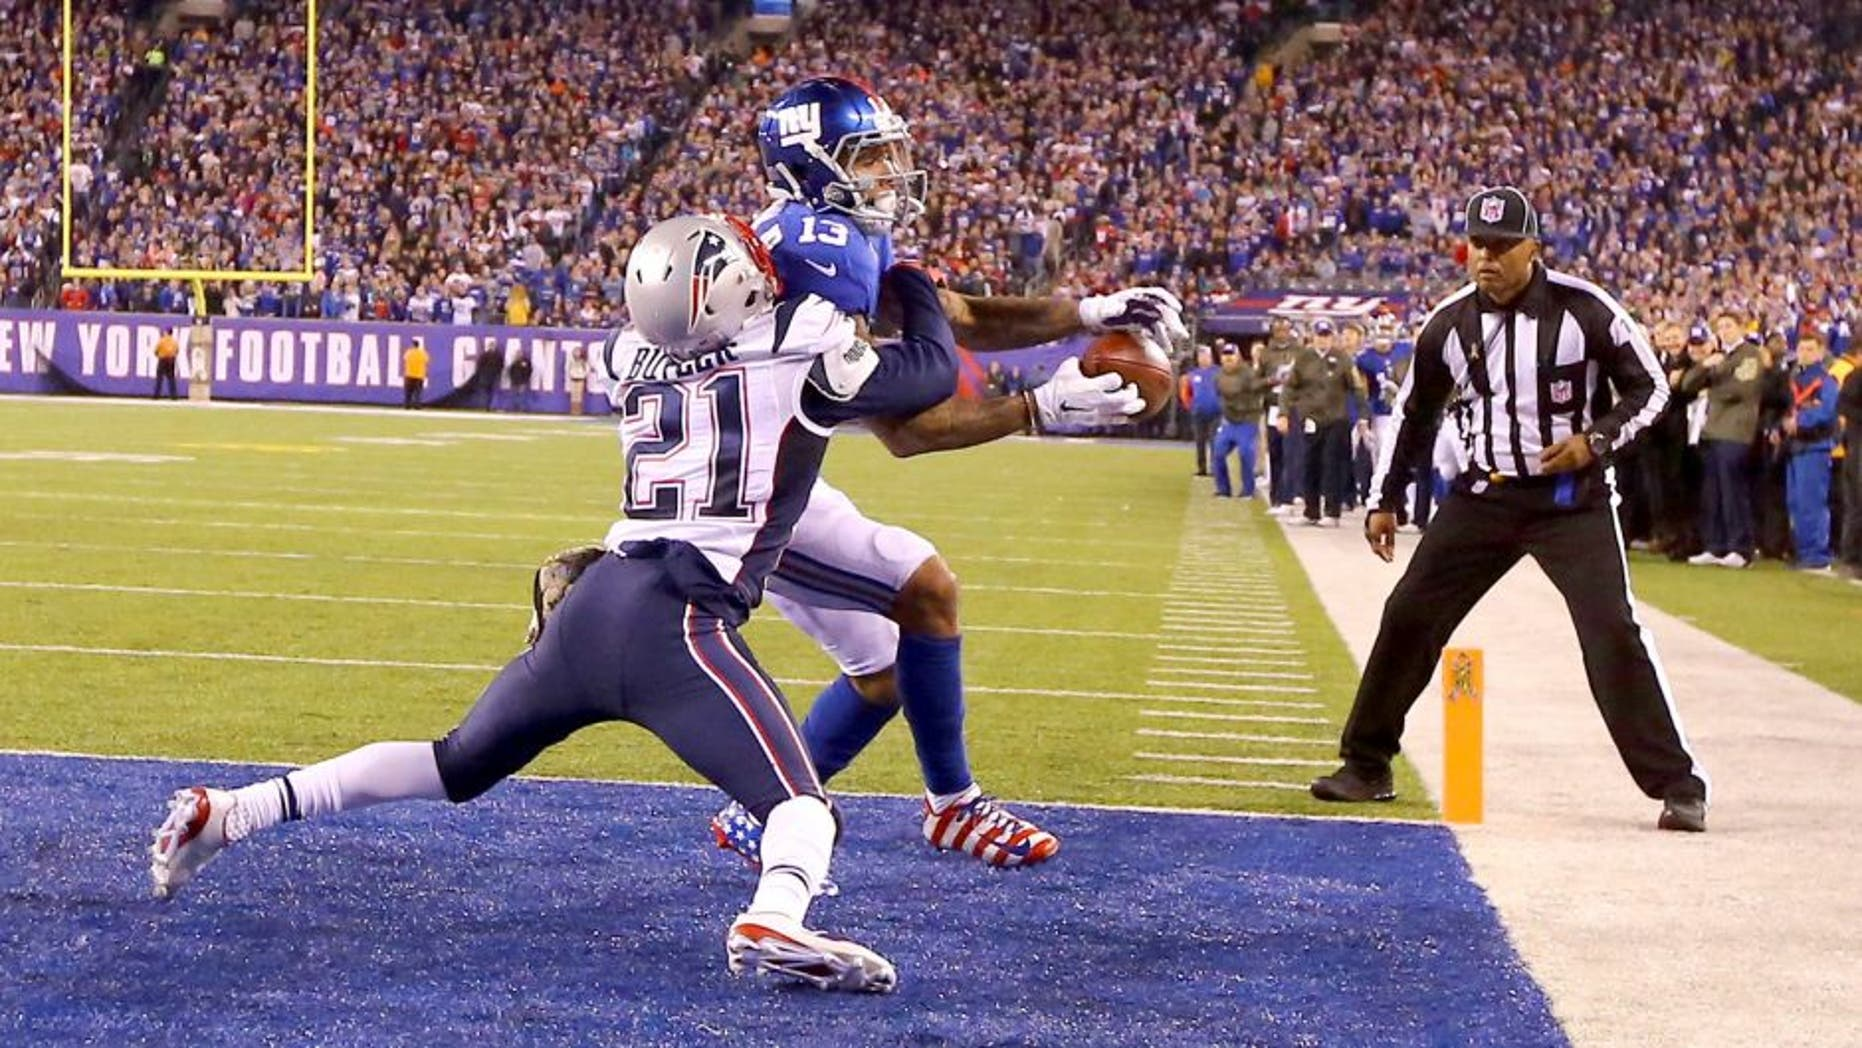 EAST RUTHERFORD, NJ - NOVEMBER 15: Odell Beckham #13 of the New York Giants cannot hold onto the ball which is broken up in the end zone by Malcolm Butler #21 of the New England Patriots in the fourth Quarter during their game at MetLife Stadium on November 15, 2015 in East Rutherford, New Jersey. (Photo by Al Bello/Getty Images)